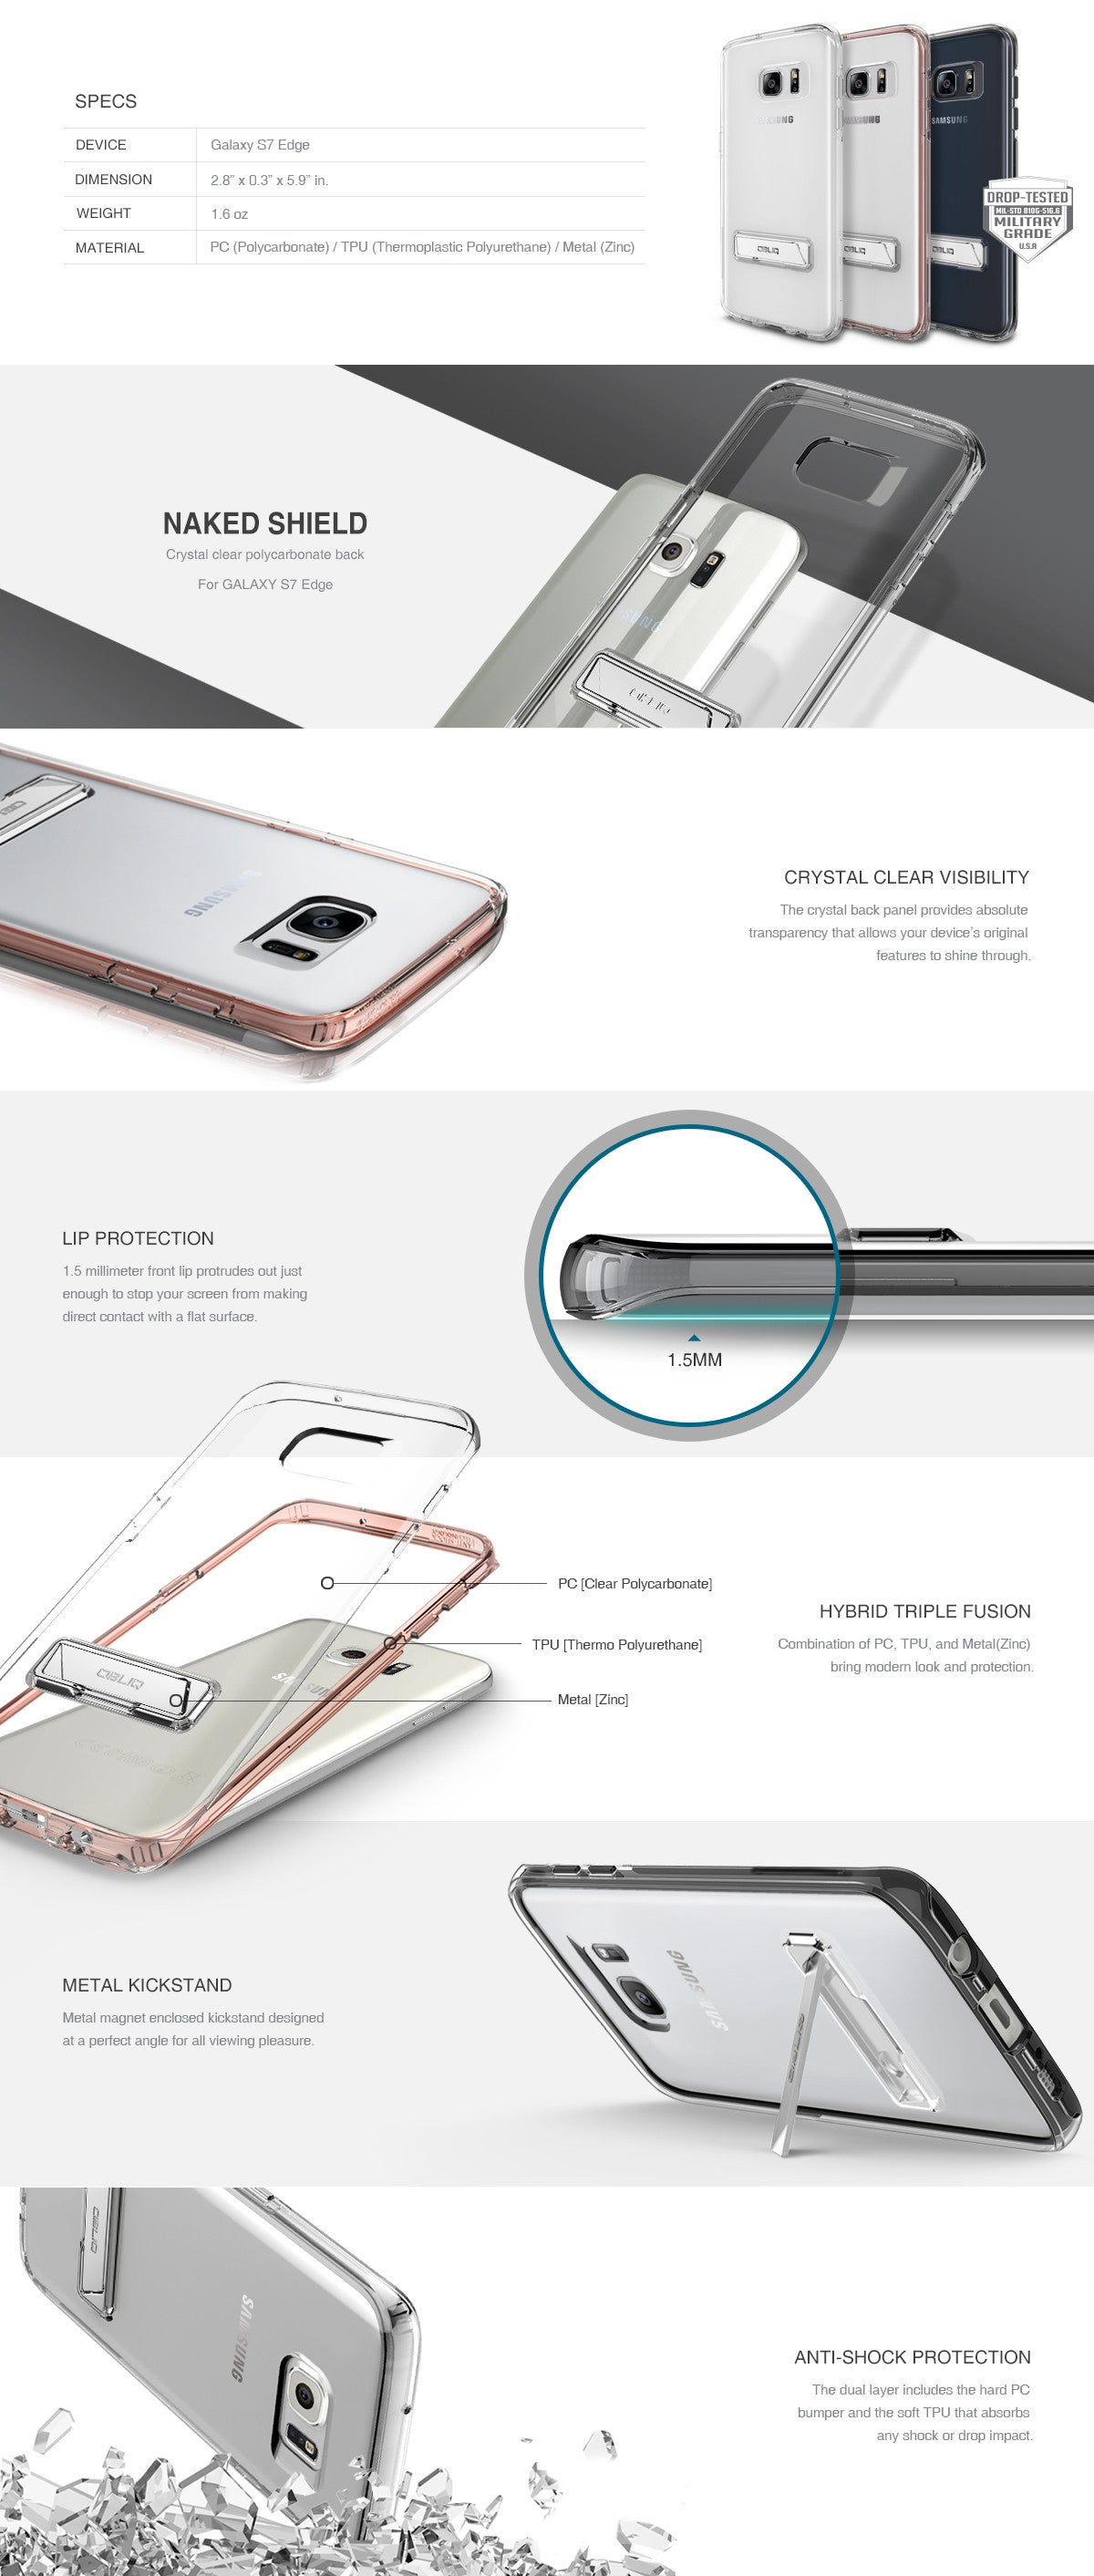 Galaxy S7 Edge Case Naked Shield Obliq Shining Crystal Clear For Xiaomi Redmi 3 Obliqs The Defends Against Drops And Scratches Highlights Phones Original Design